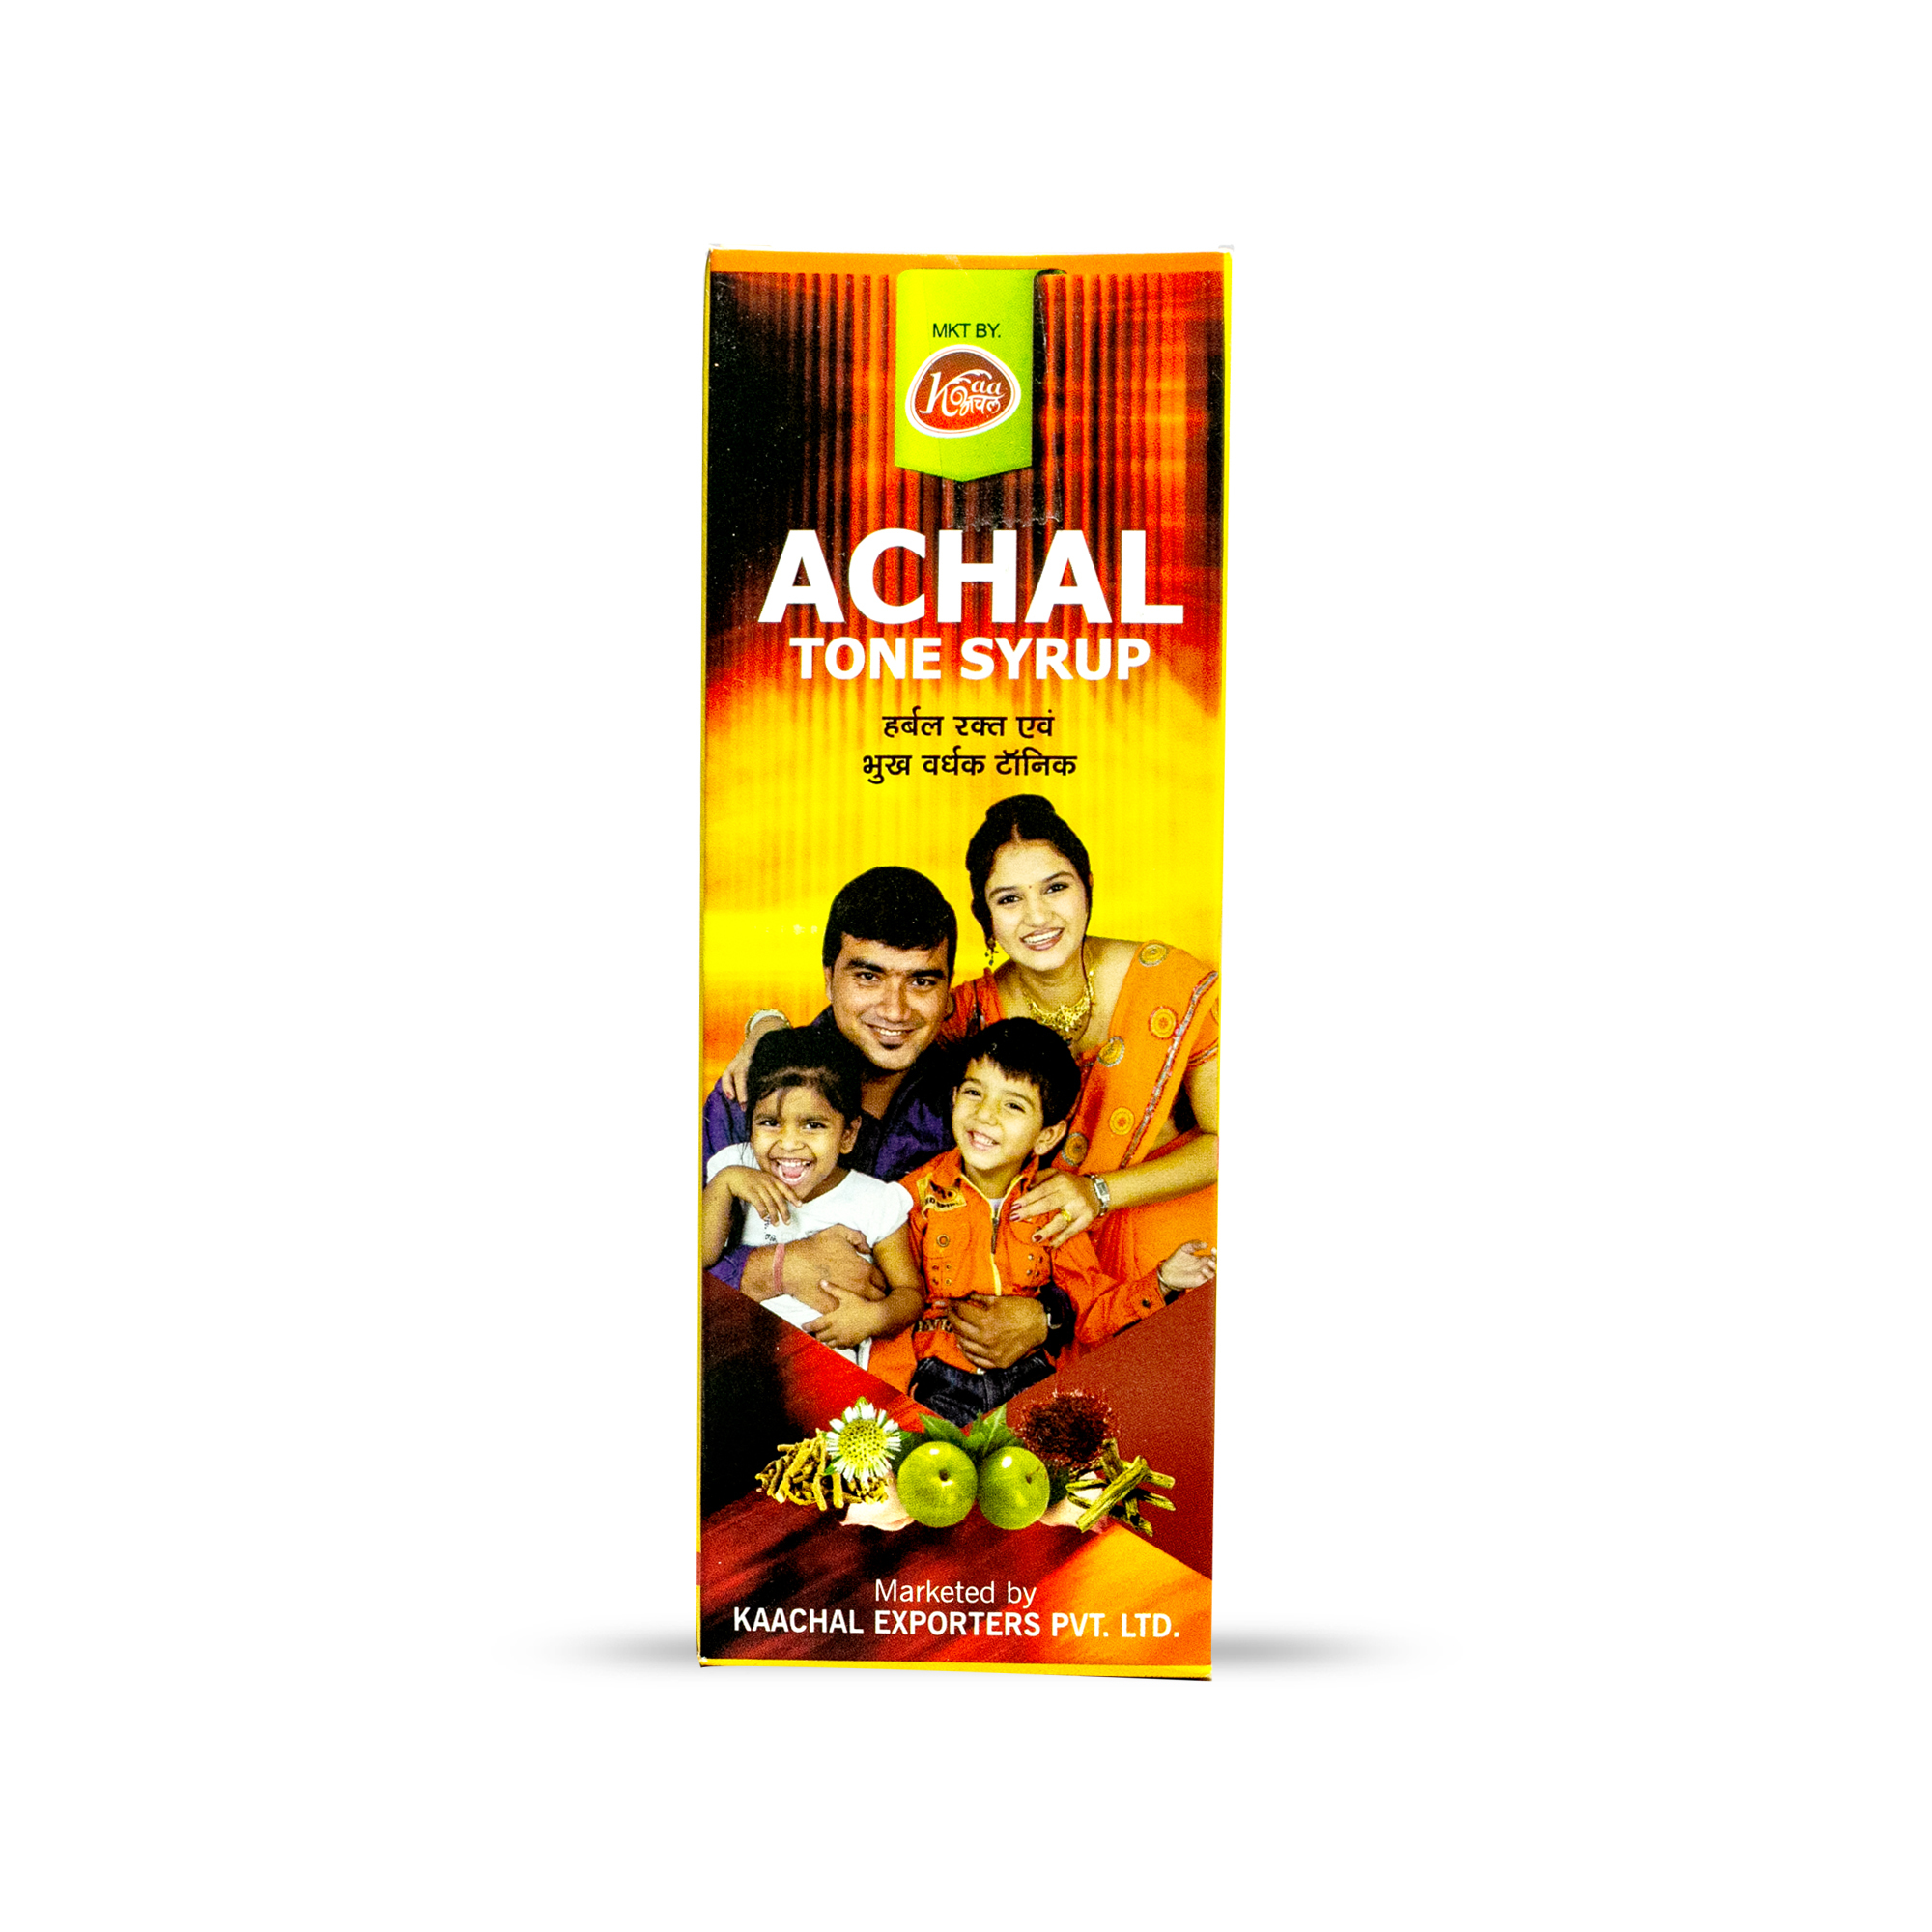 ACHAL TONE SYRUP